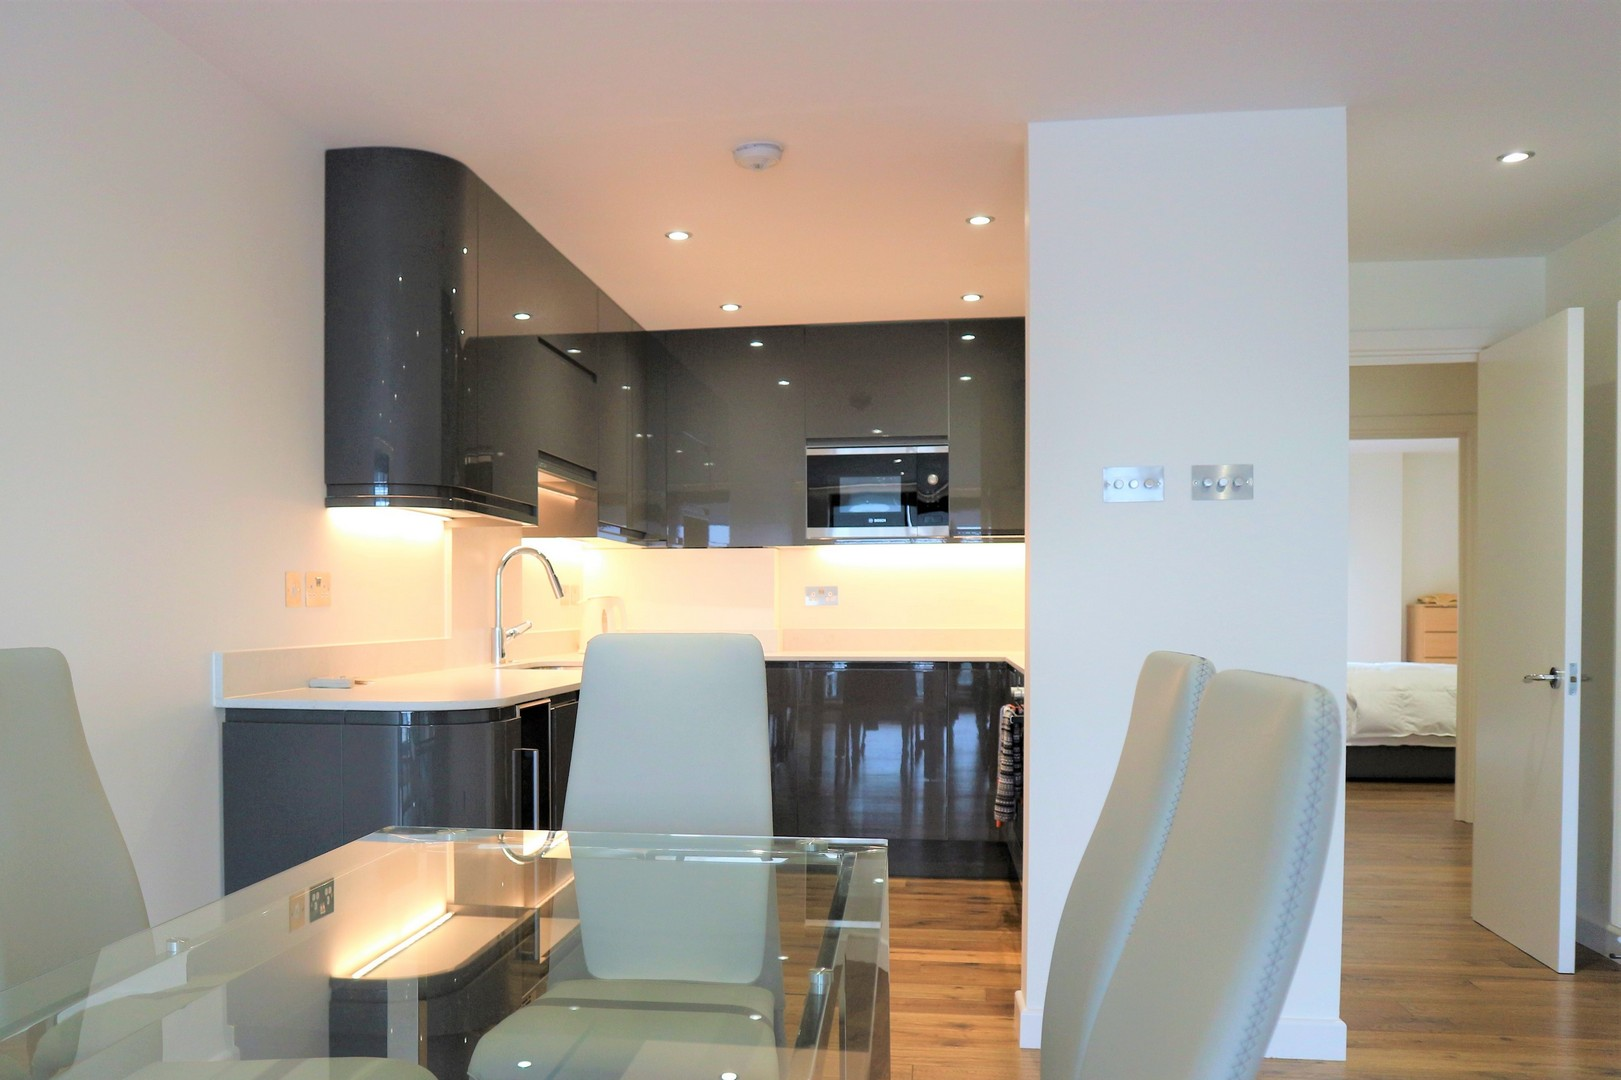 A London docklands flat refurbishment